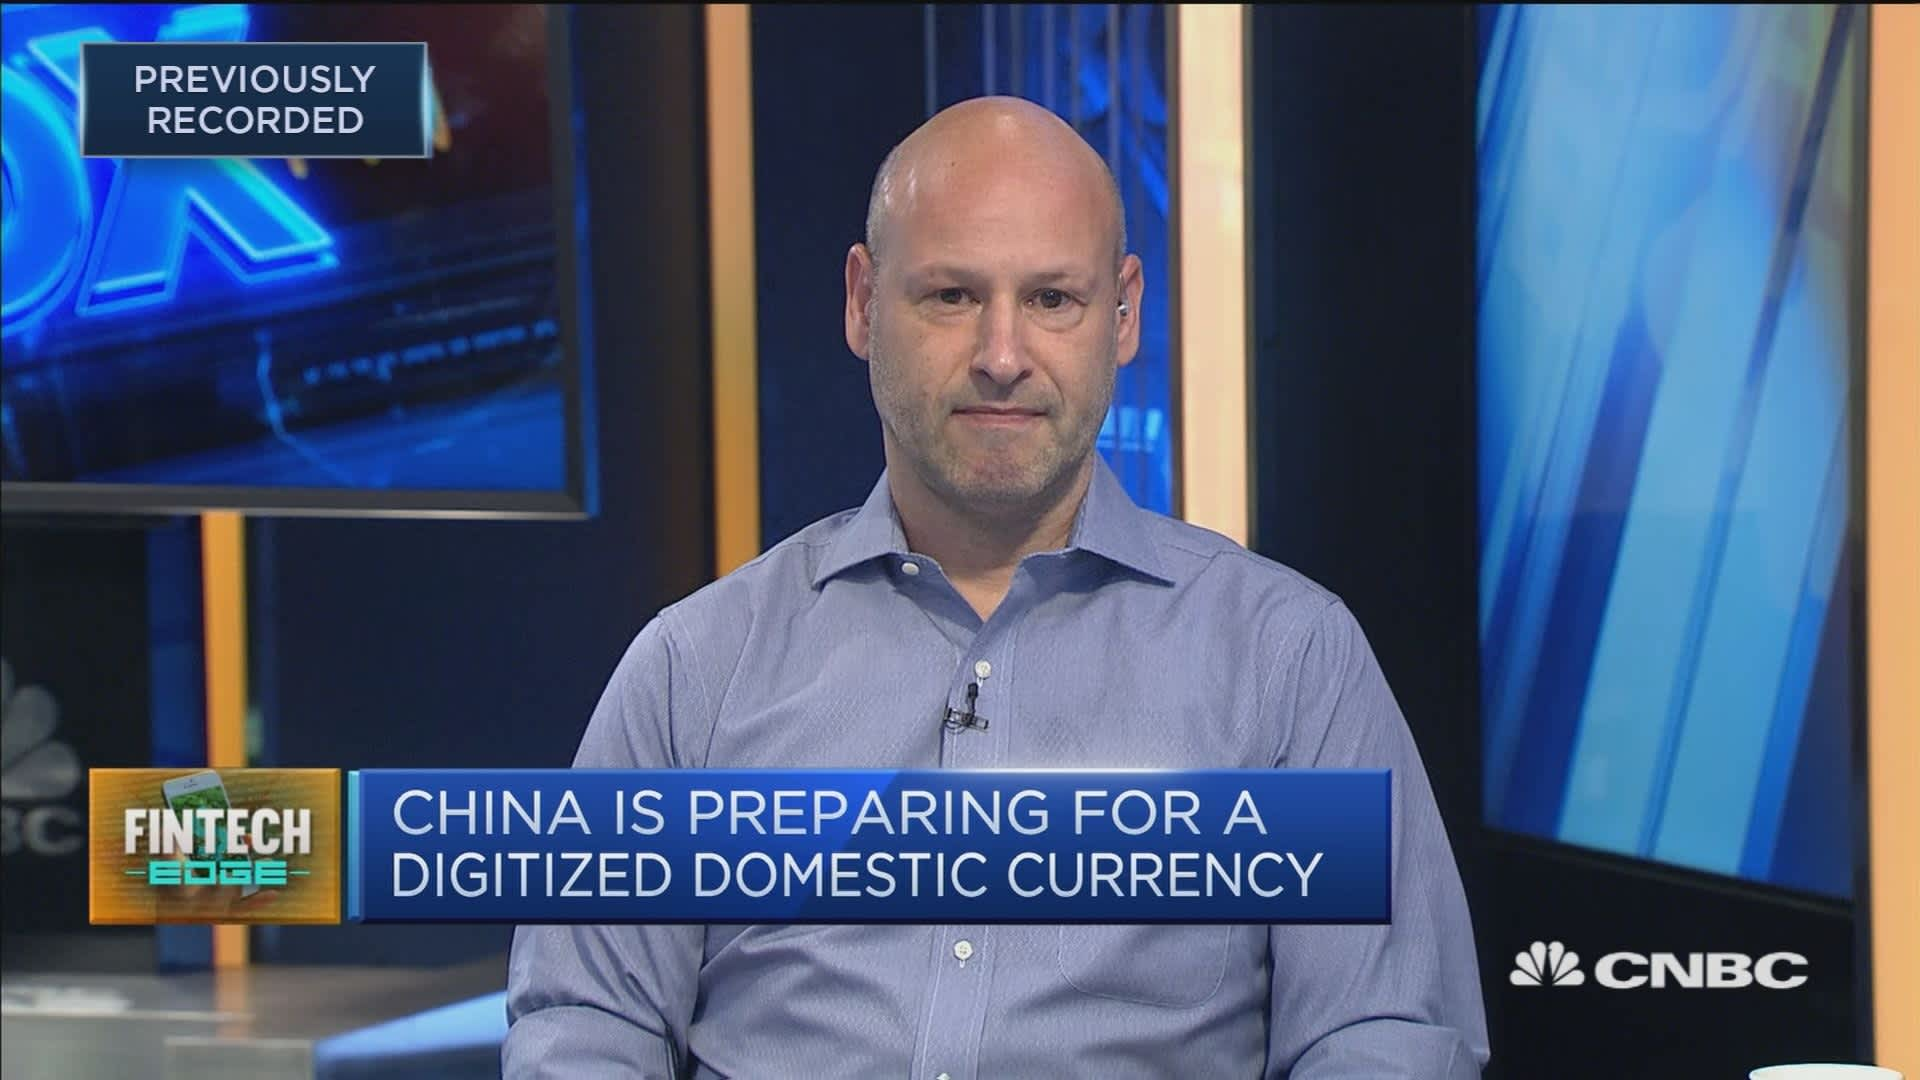 China's digital currency is likely to be used to 'maintain' control: Ethereum co-founder